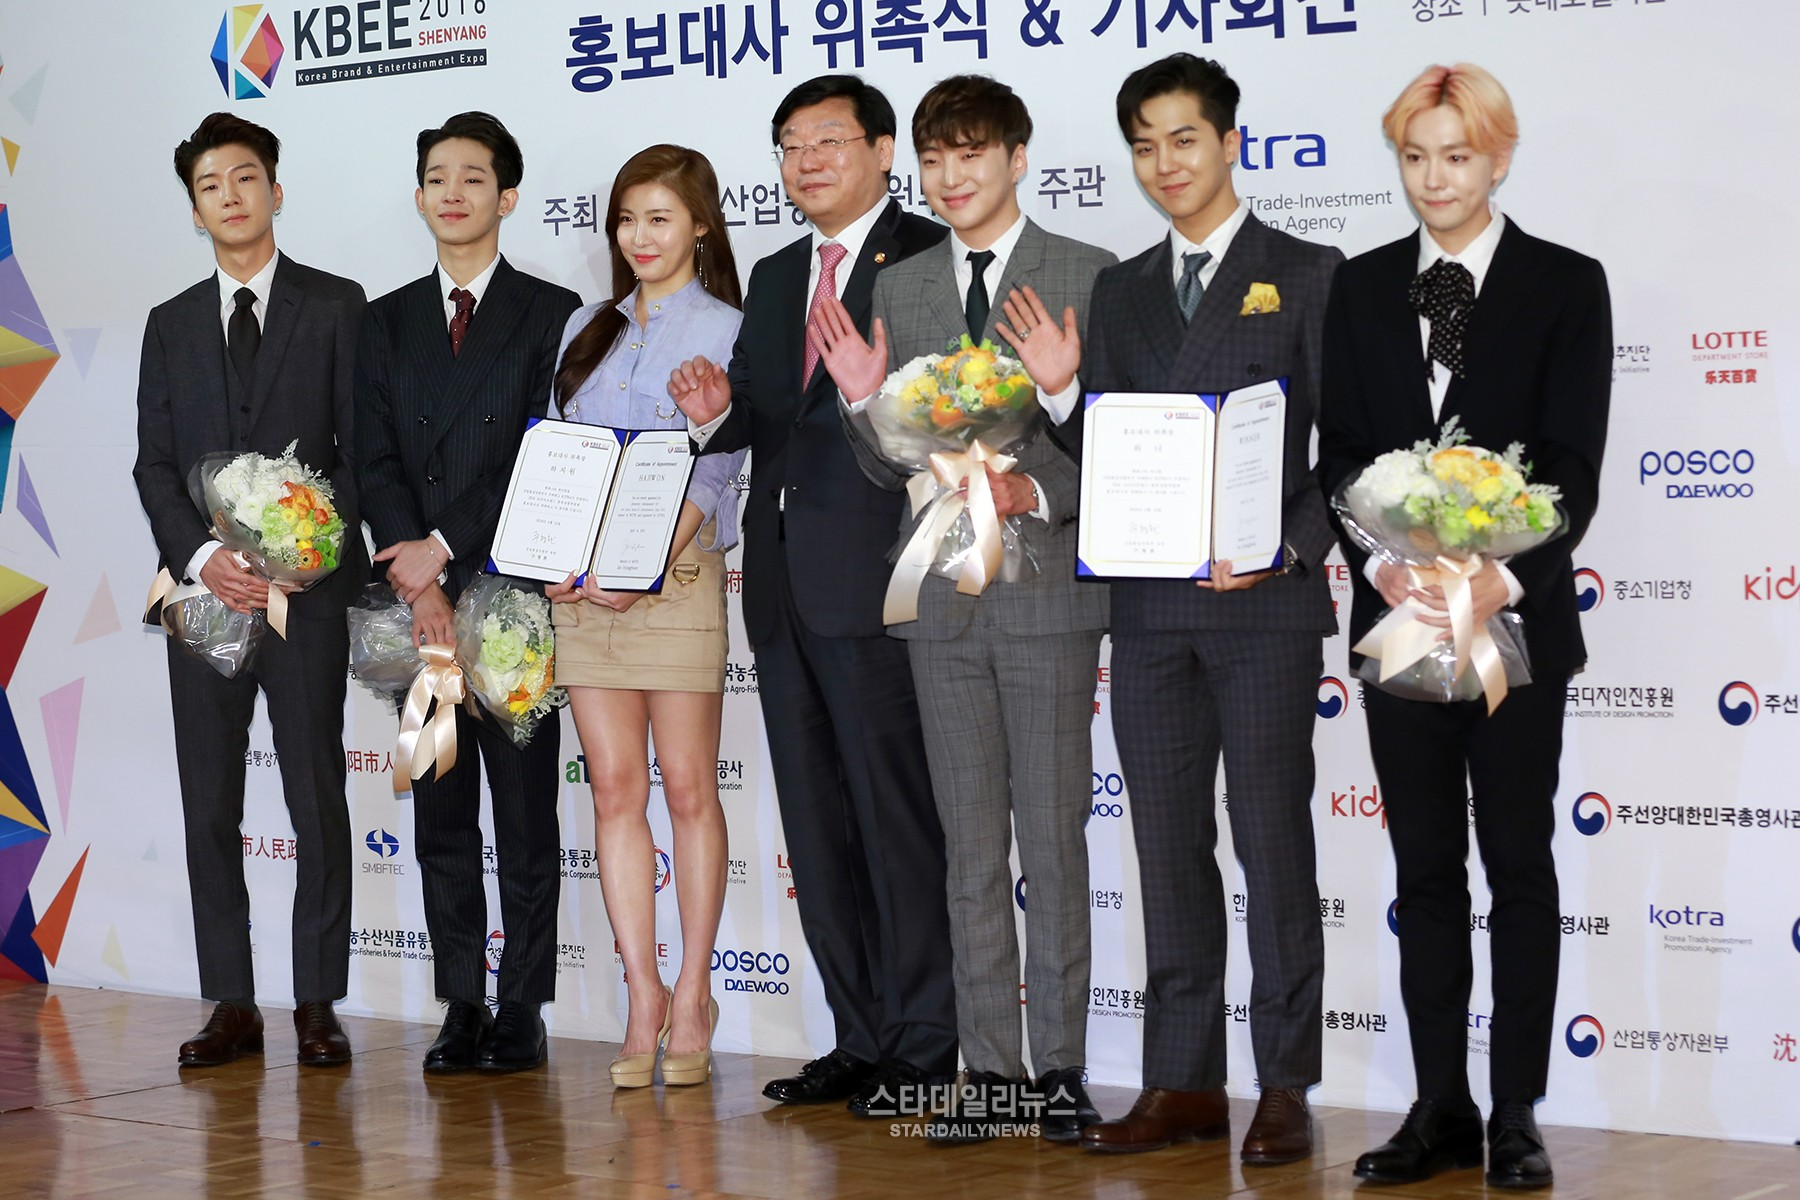 ha ji won winner kbee star daily news